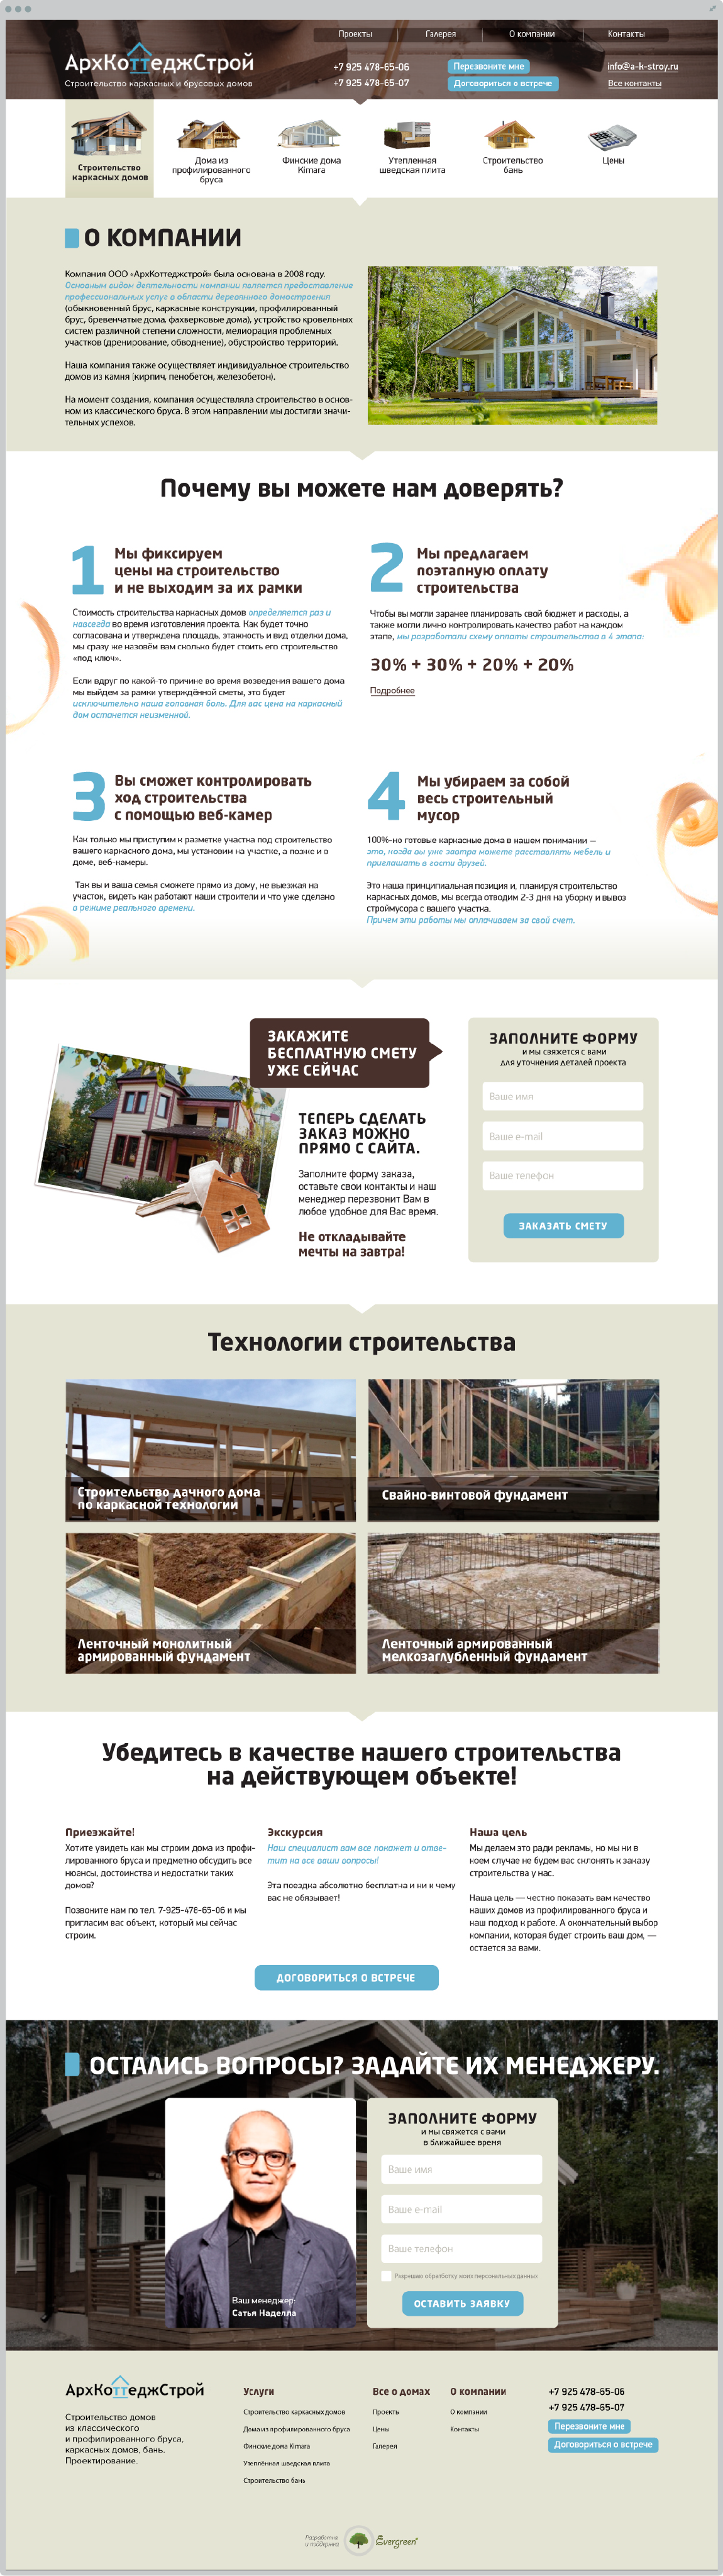 The site for the construction of wooden houses | Evergreen projects 12